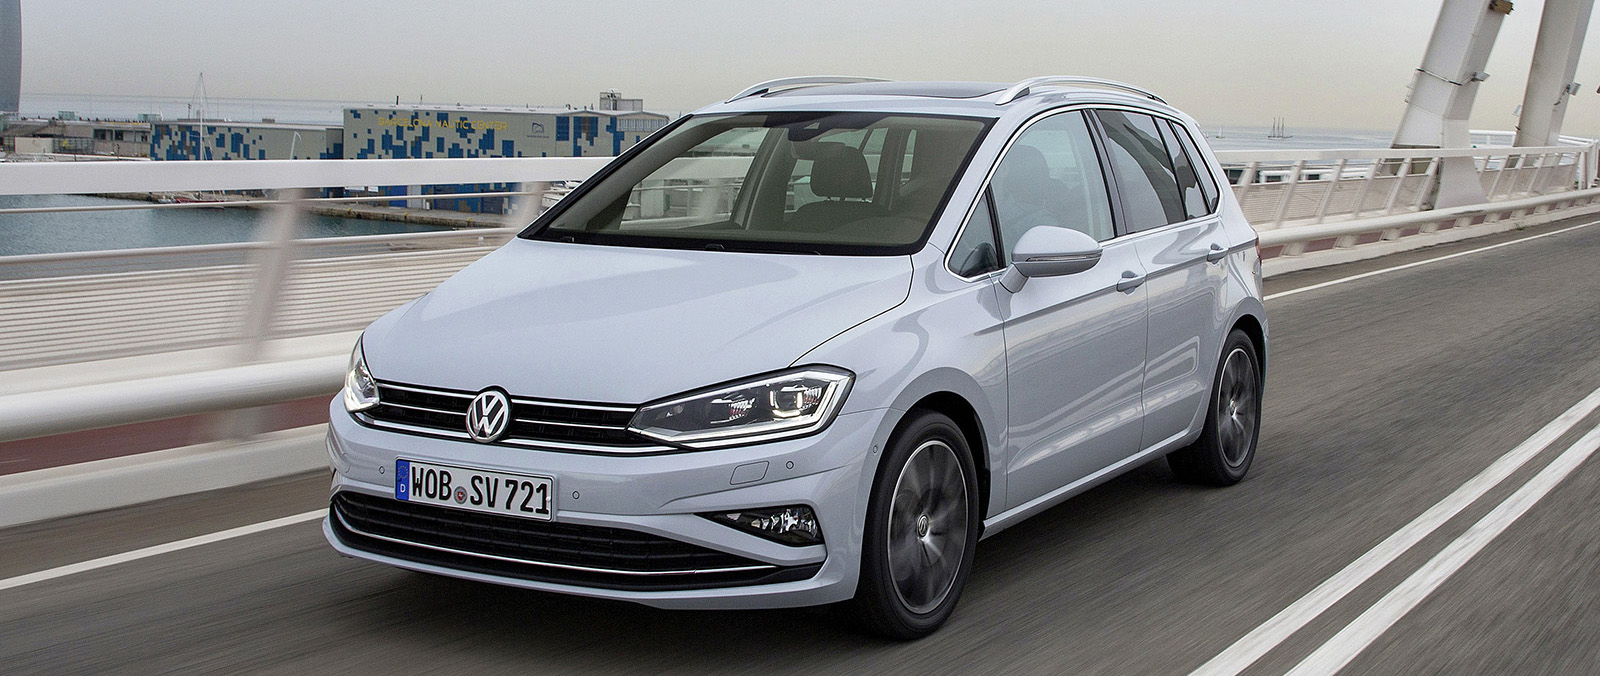 Nieuwe Volkswagen Golf Sportsvan nu in de showroom